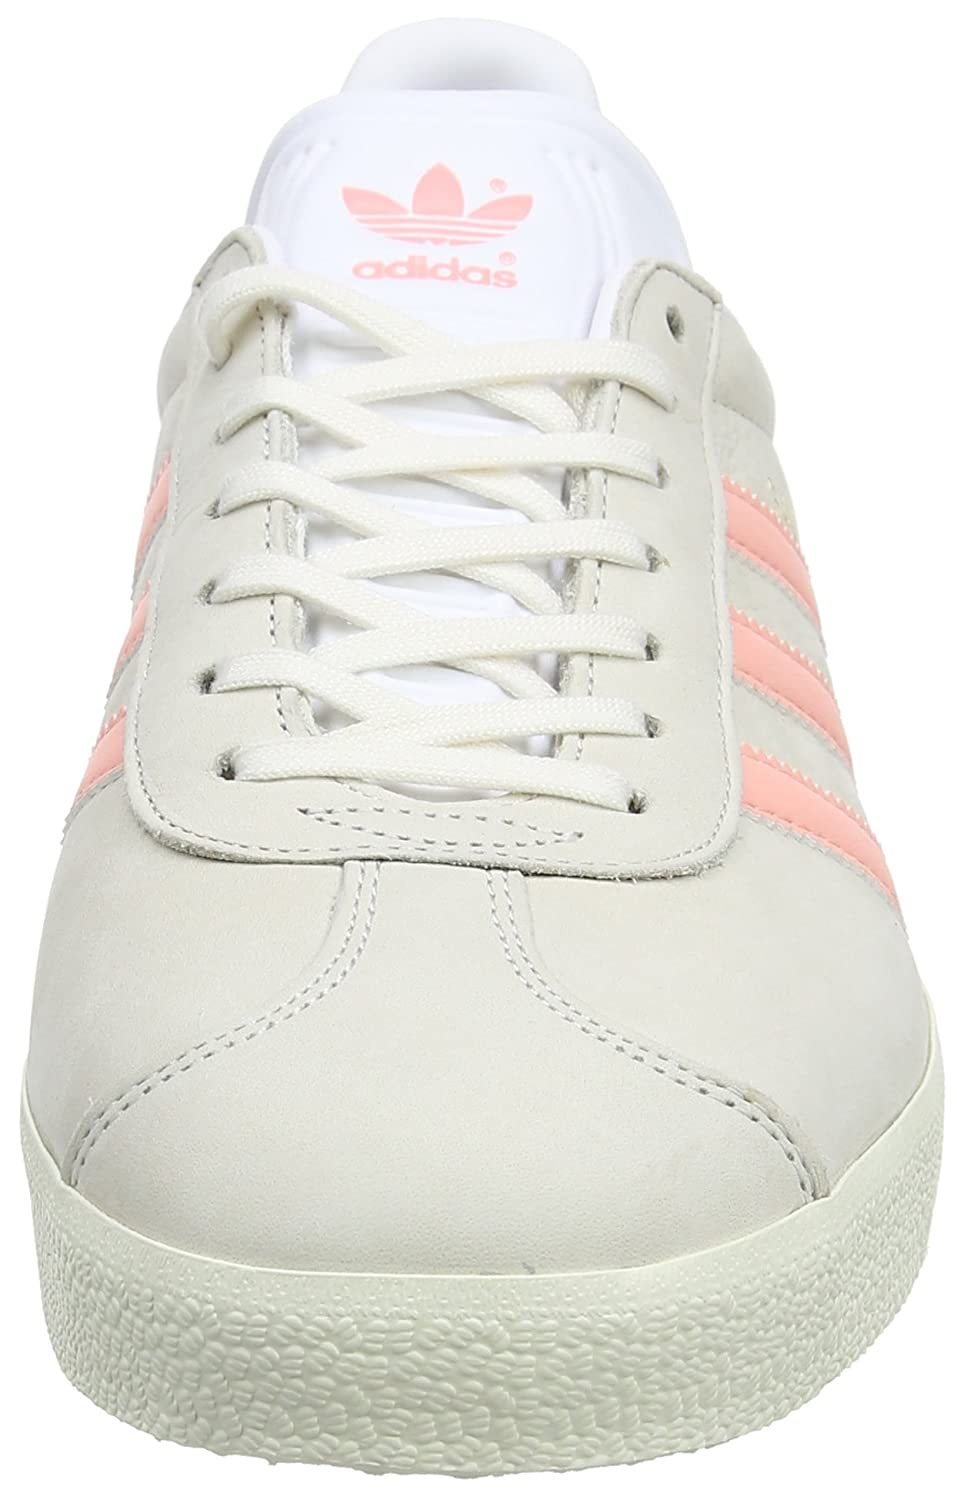 GazelleBaskets GazelleBaskets GazelleBaskets Adidas FemmeOriginals Adidas Basses FemmeOriginals Adidas GazelleBaskets Adidas Basses Basses FemmeOriginals A3LSc5R4jq